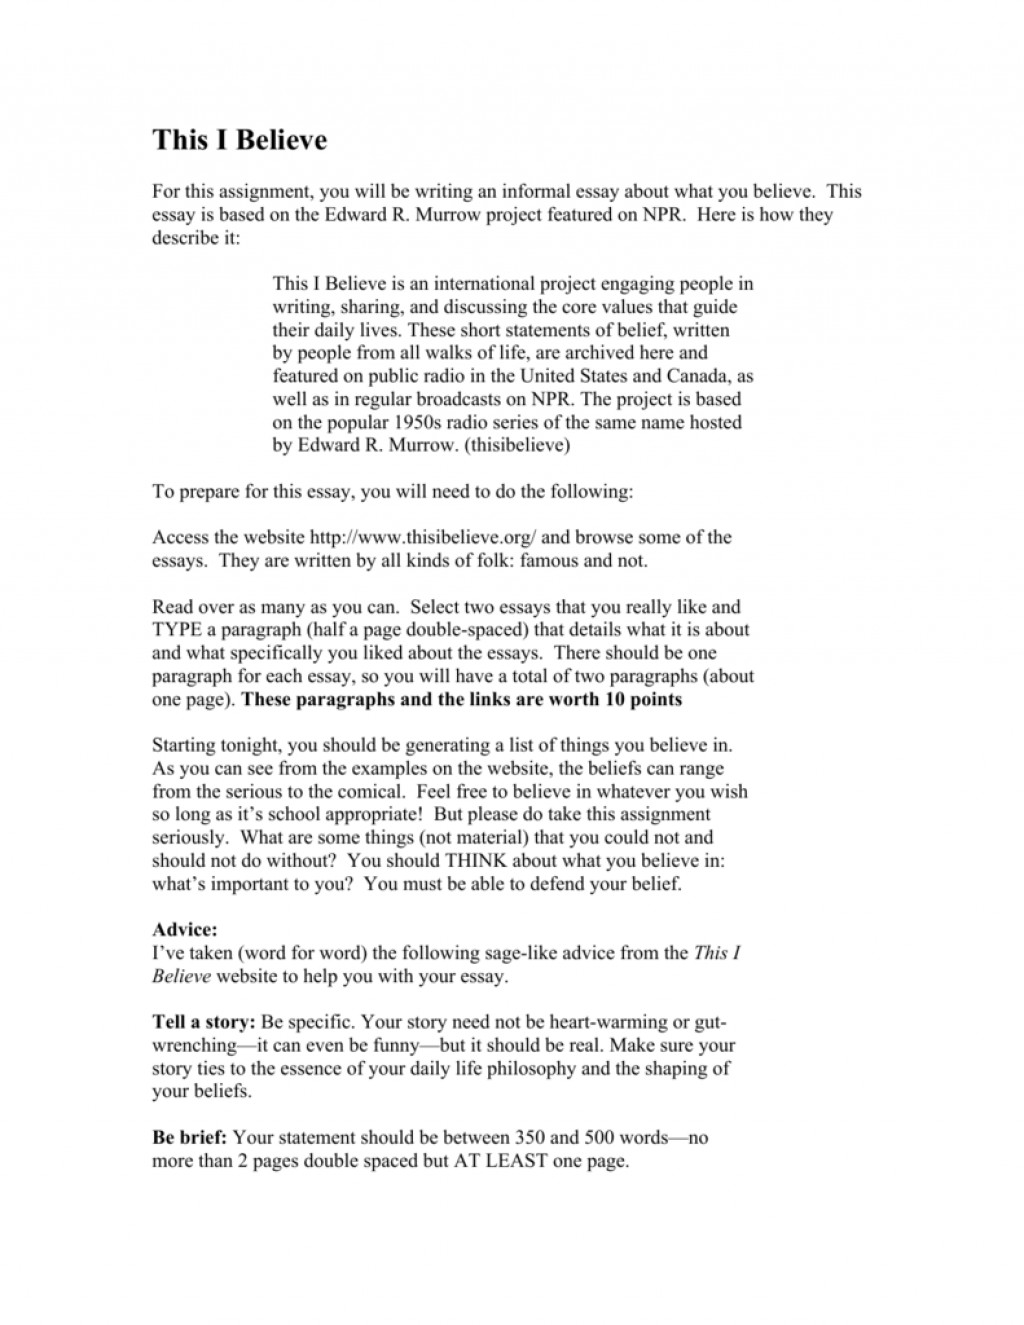 005 Essay Example This I Believe Essays 008807220 1 Dreaded By High School Students Npr Large